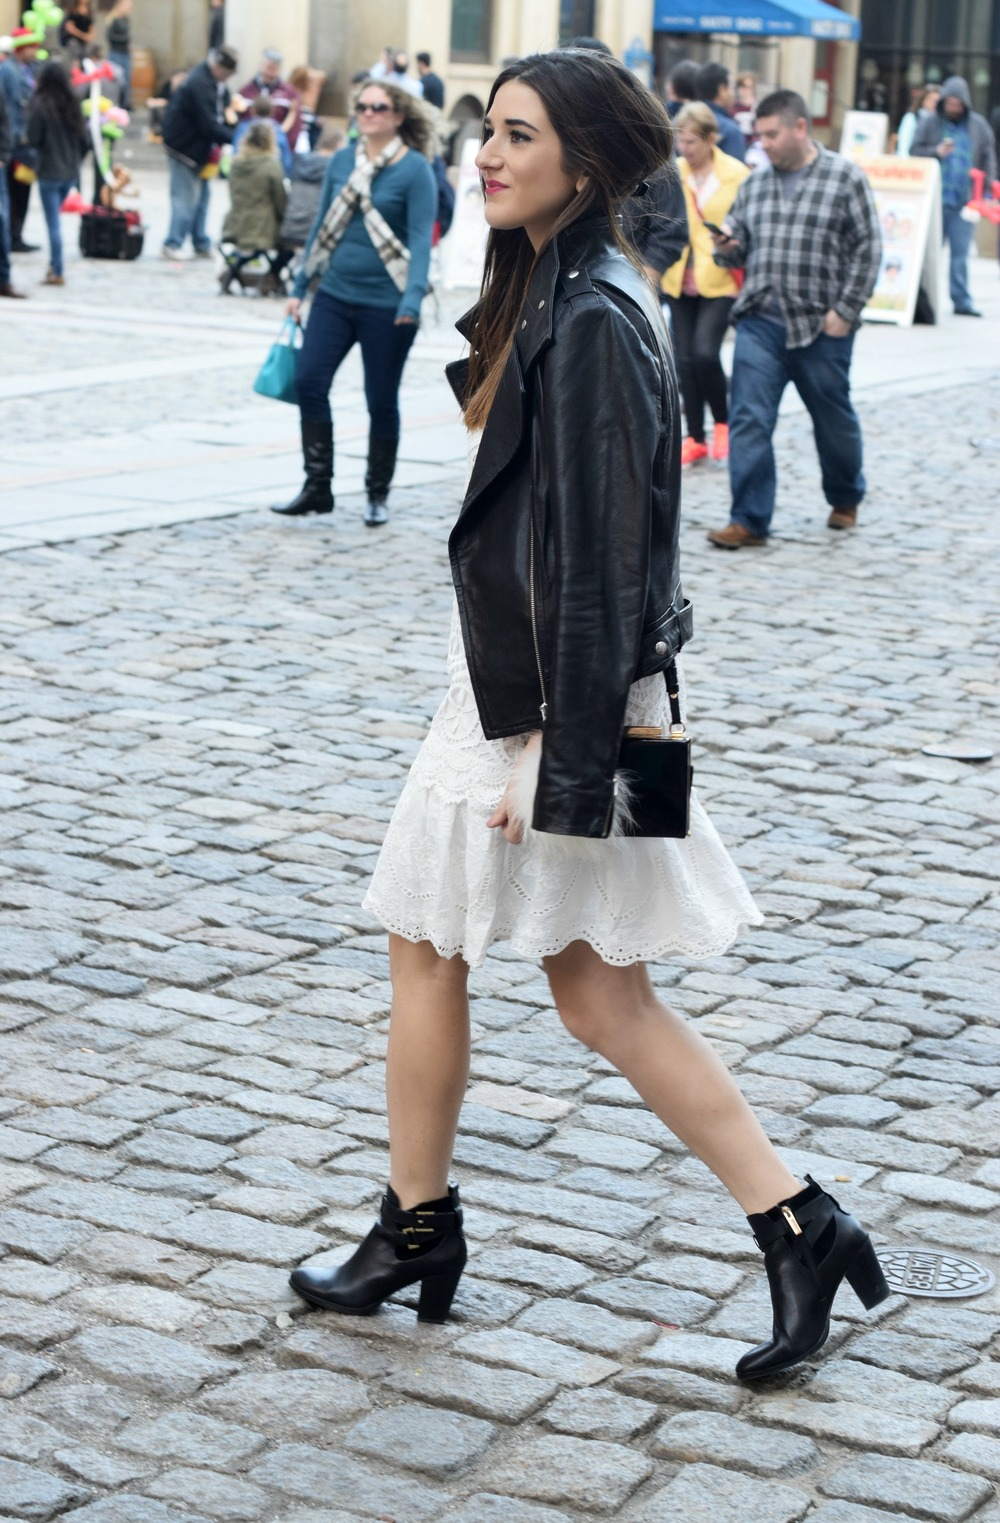 Desigual White Lace Dress Mackage Moto Jacket Louboutins & Love Fashion Blog Esther Santer NYC Street Style Blogger Outfit OOTD Black Booties Nordstrom Shoes Inspo Photoshoot Boston Leather Bag Pom Pom Model Girl Women Fall Look Hair Beautiful Pretty.jpg